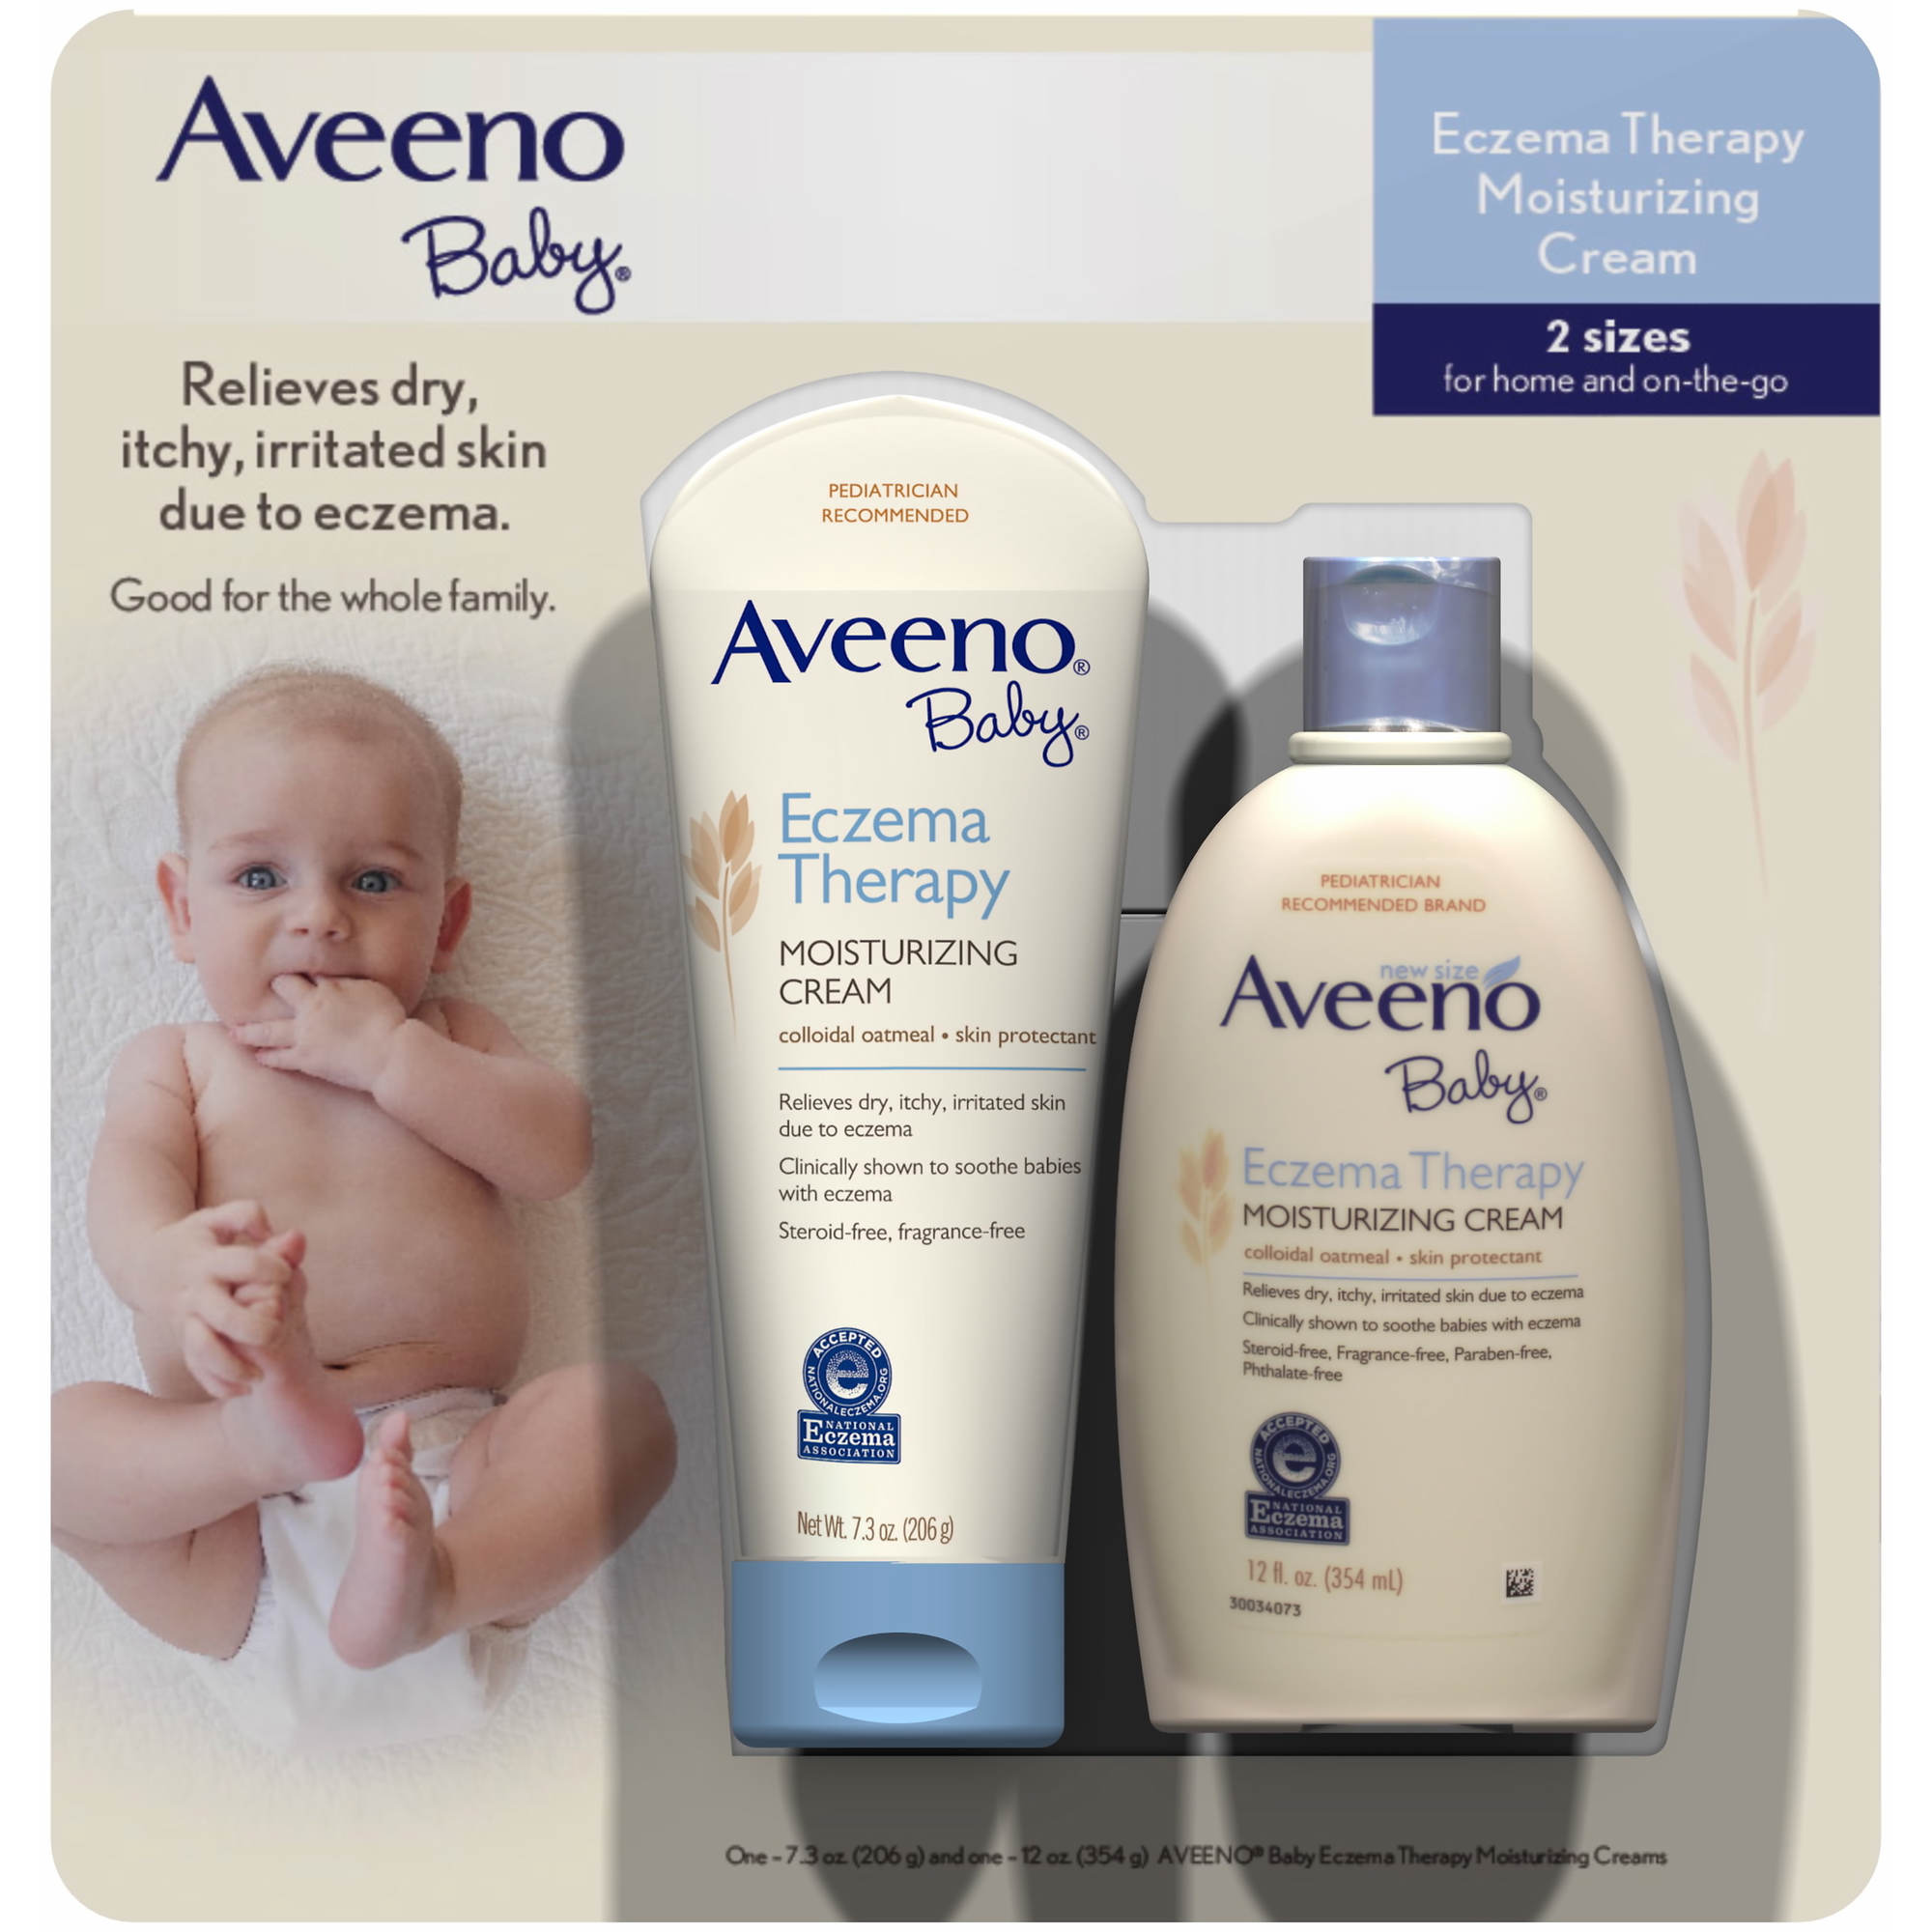 Best crib sheets for baby with eczema - Aveeno Baby Eczema Therapy 2 Ct